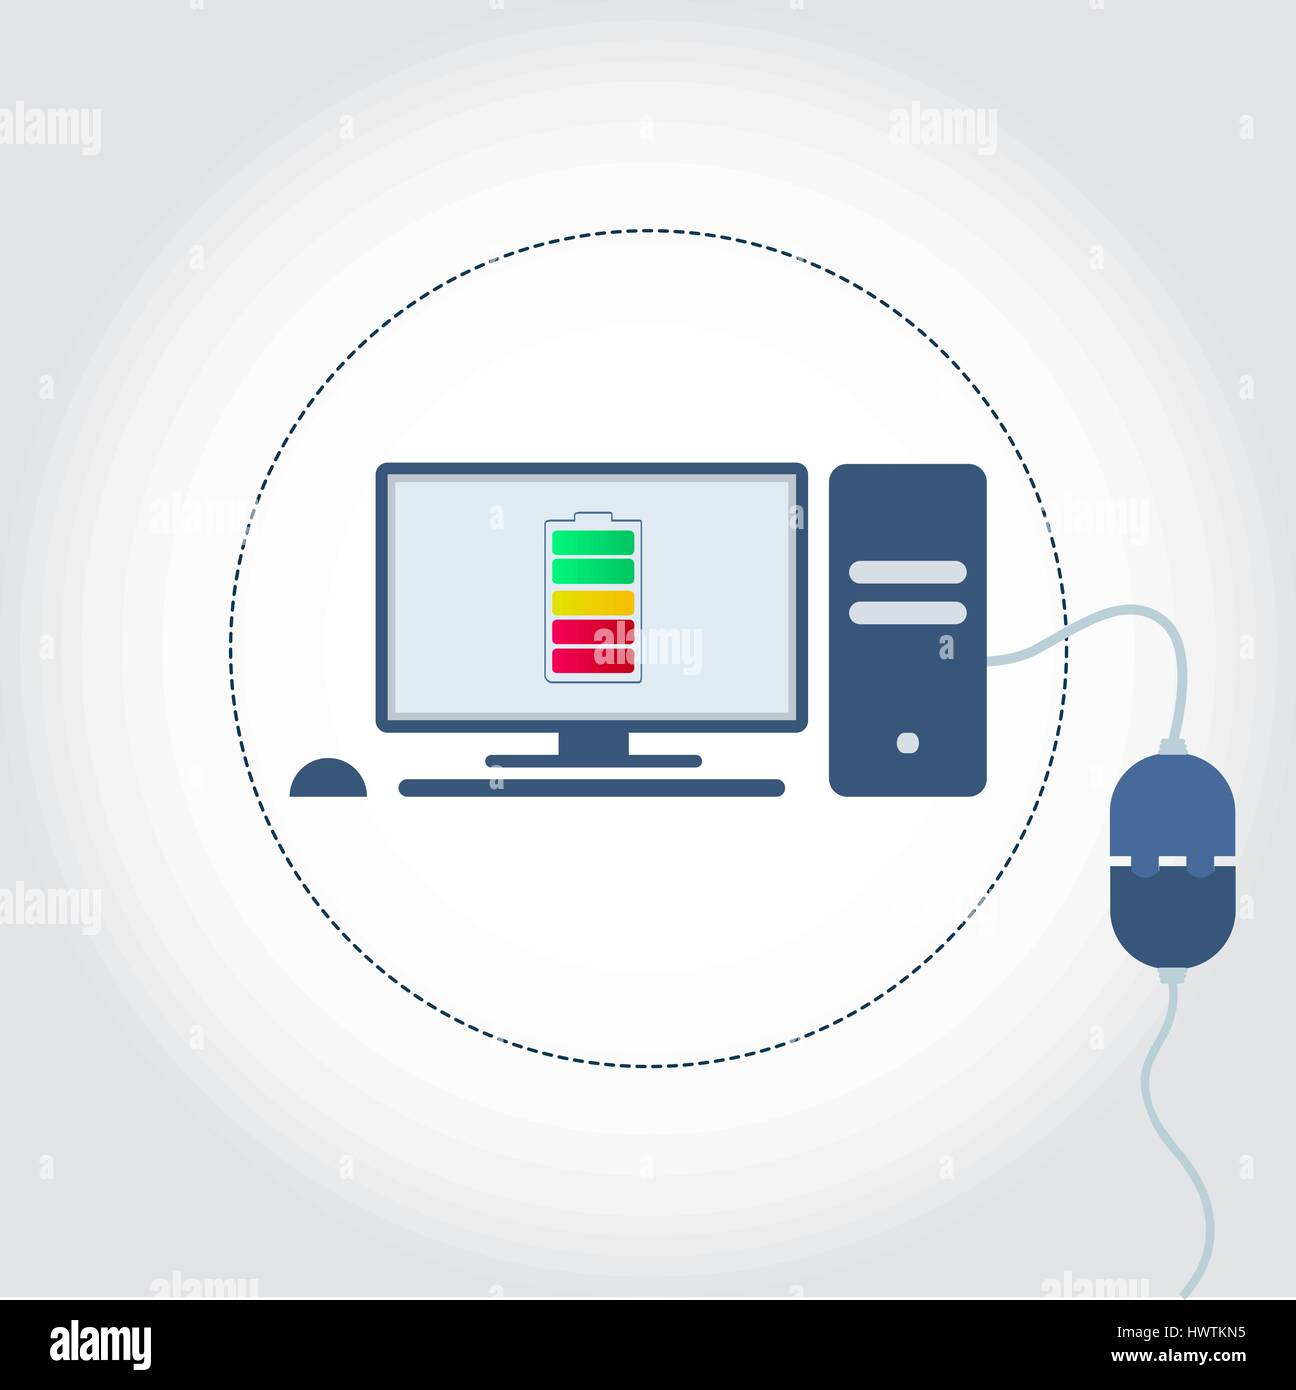 Computer with a plug plugged in and battery symbol on monitor showing charge level. Empty space for insert text. - Stock Vector